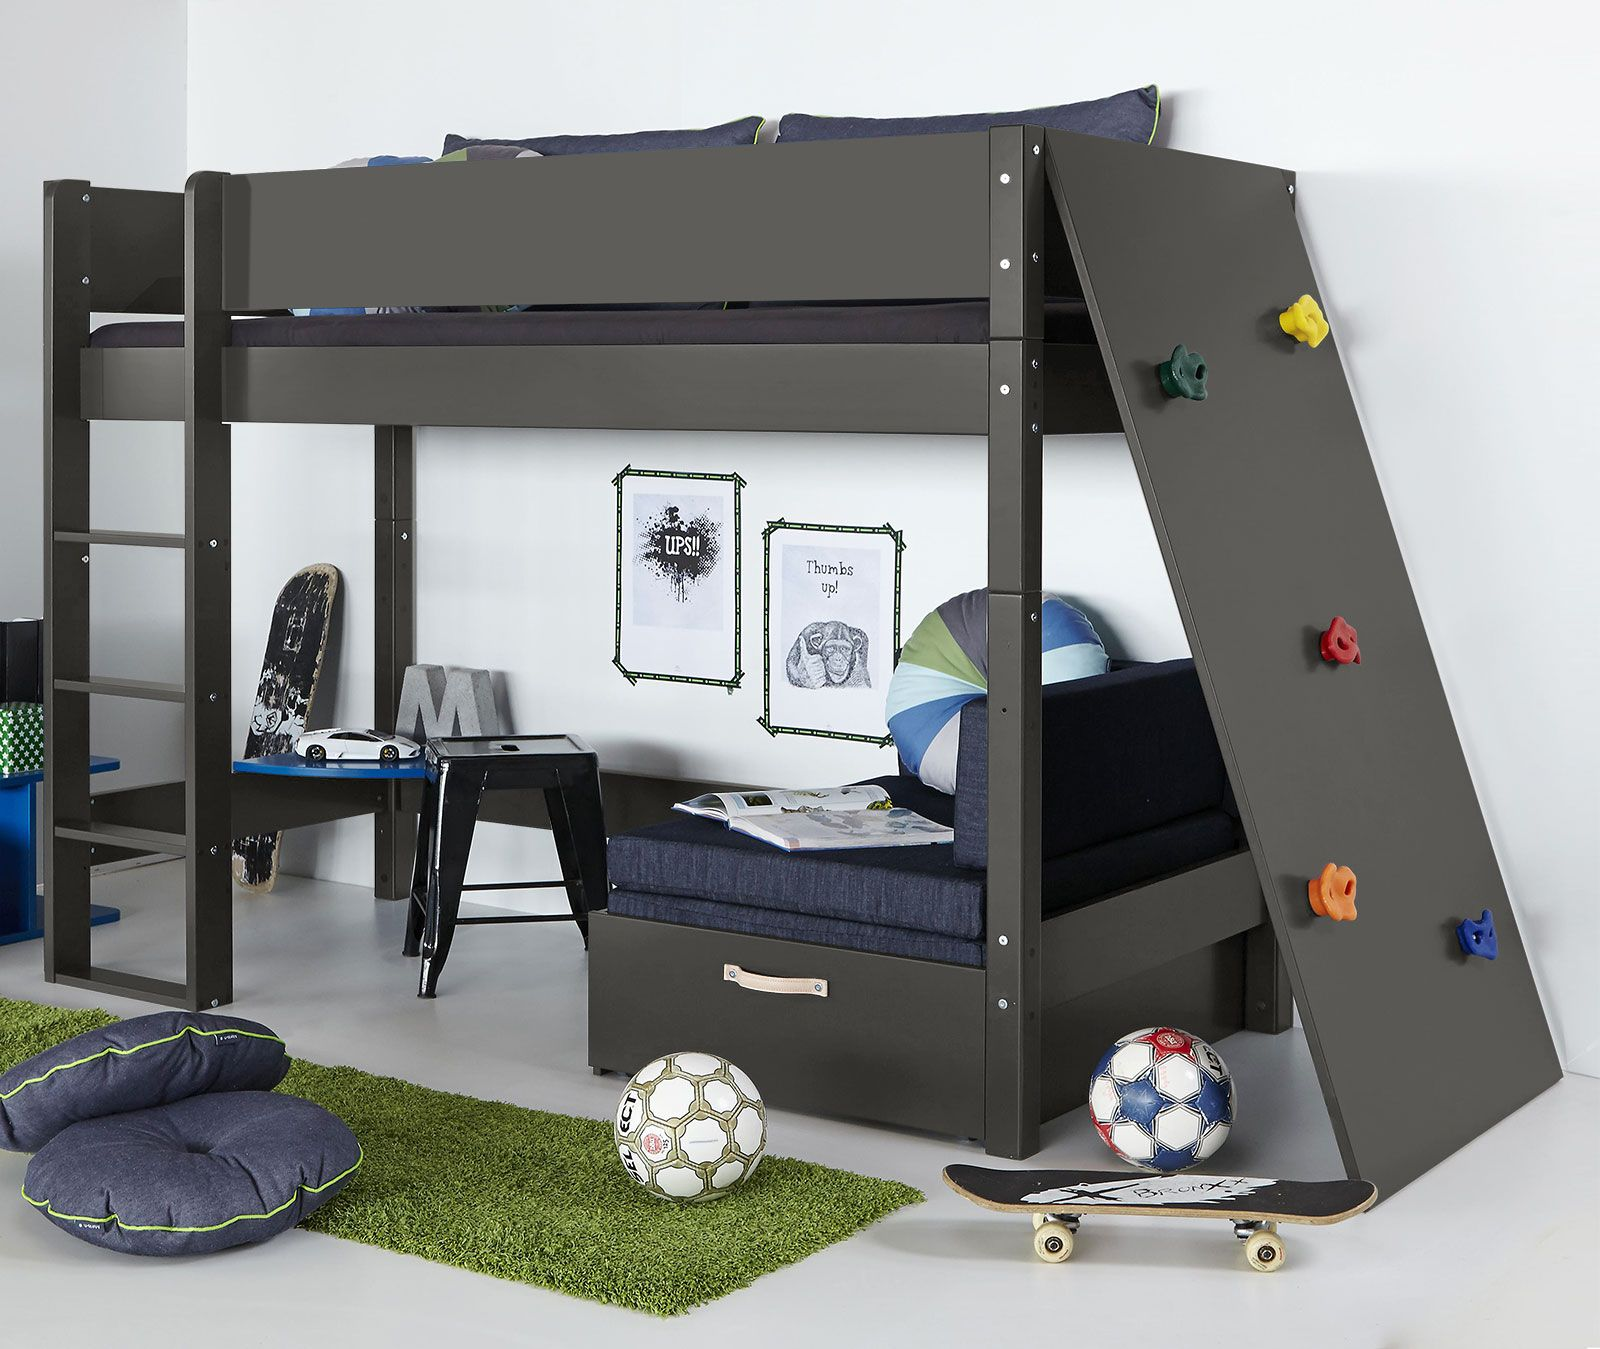 stabiles kinder midi hochbett kids town mit kletterwand bed marij pinterest kletterwand. Black Bedroom Furniture Sets. Home Design Ideas